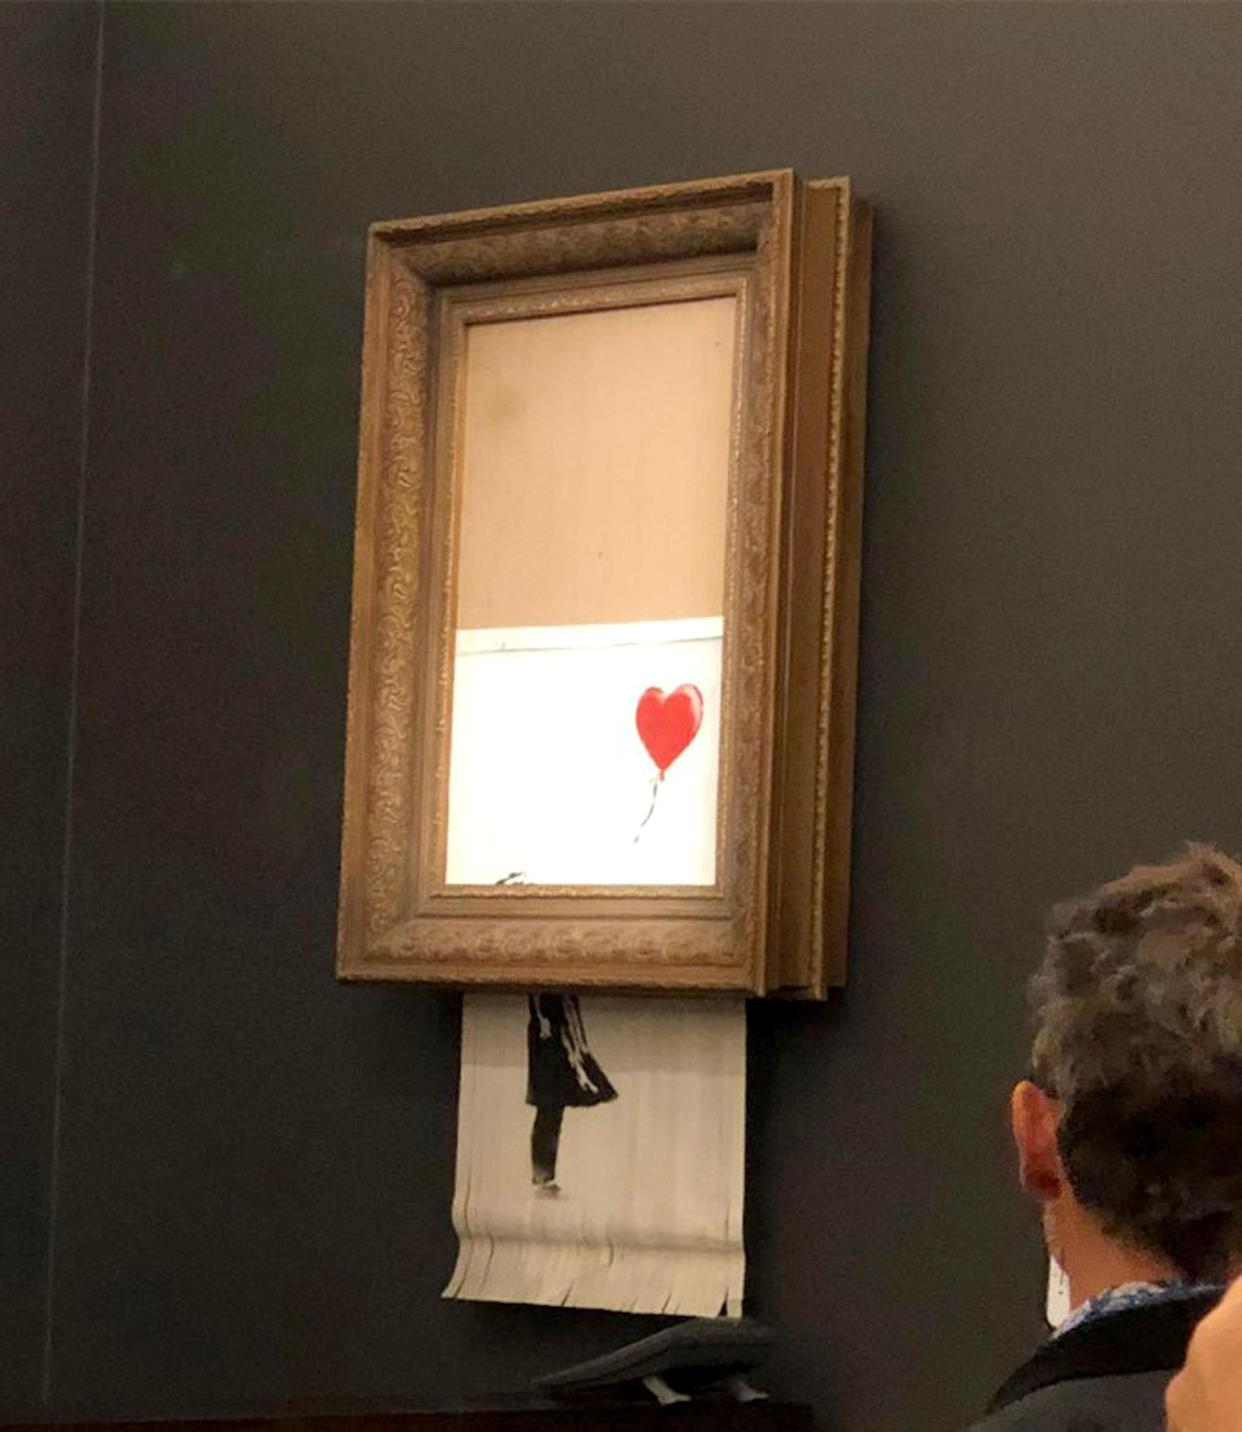 <em>'You've been Banksy'ed' – as soon as it sold, the painting suddenly passed through a shredder installed in the frame (Picture: PA)</em>